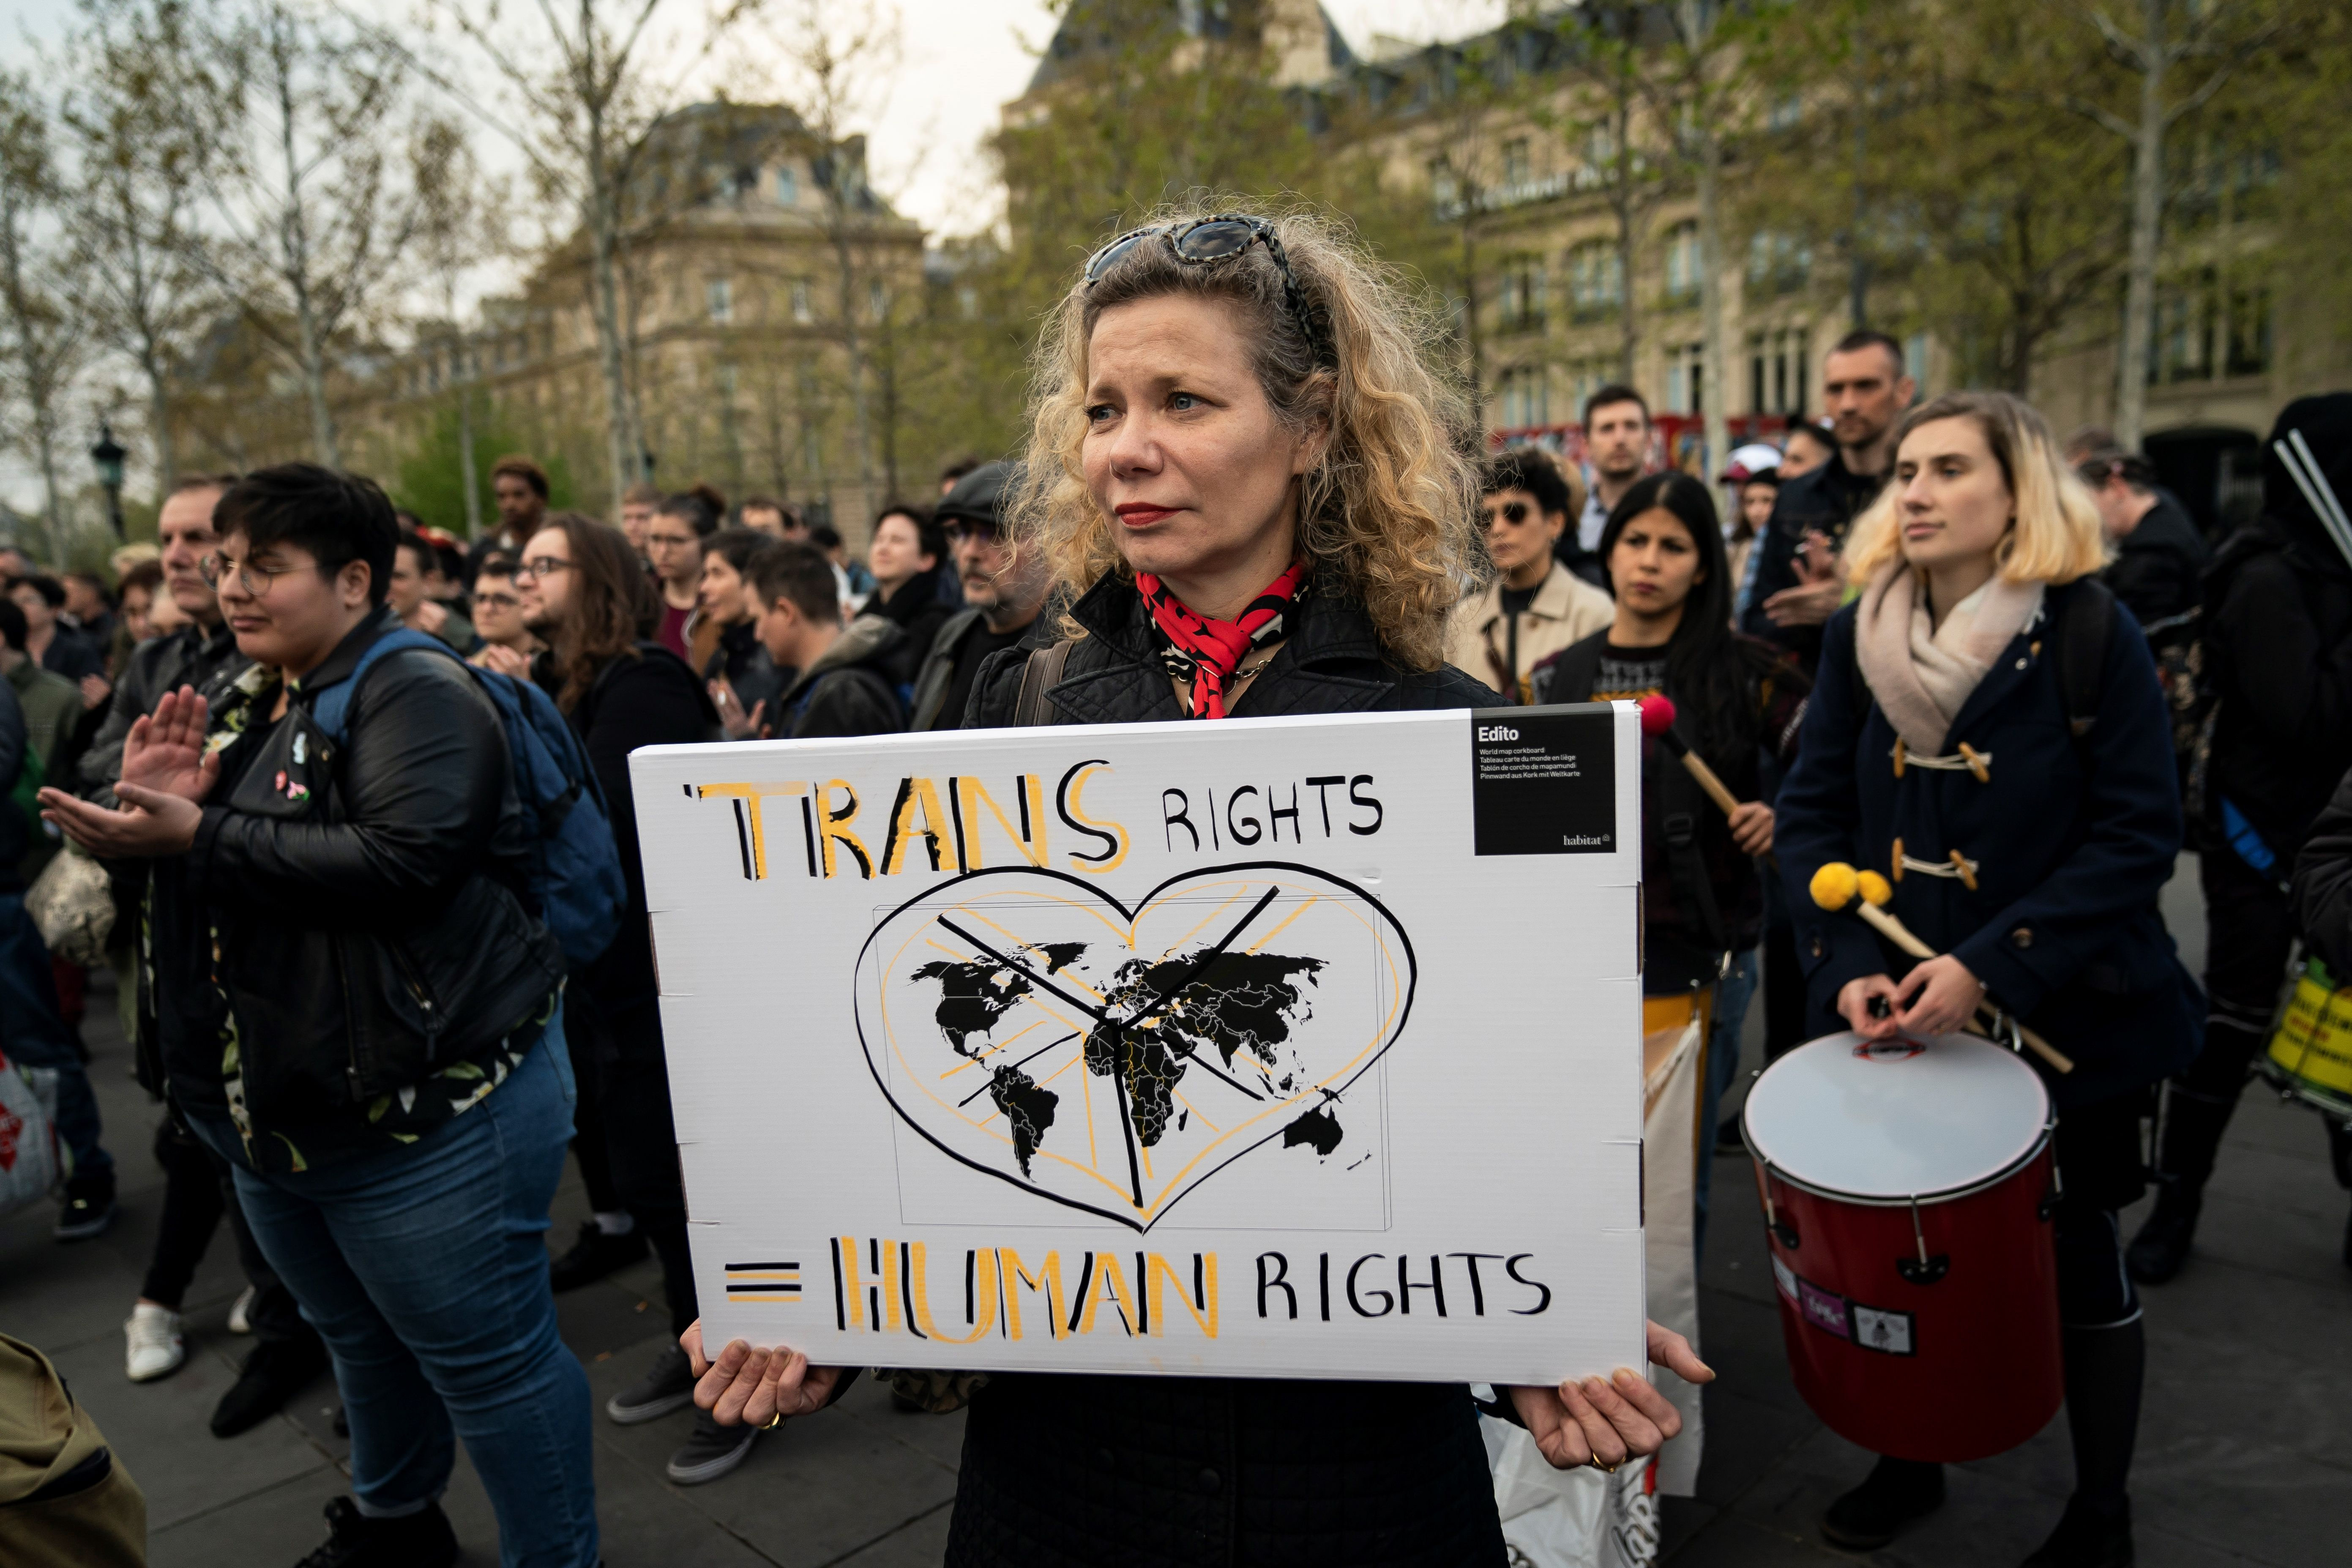 People attend a demonstration to support transgender and intersex rights and protest against discrimination in Paris on April 9, 2019. (Photo by LIONEL BONAVENTURE/AFP/Getty Images)